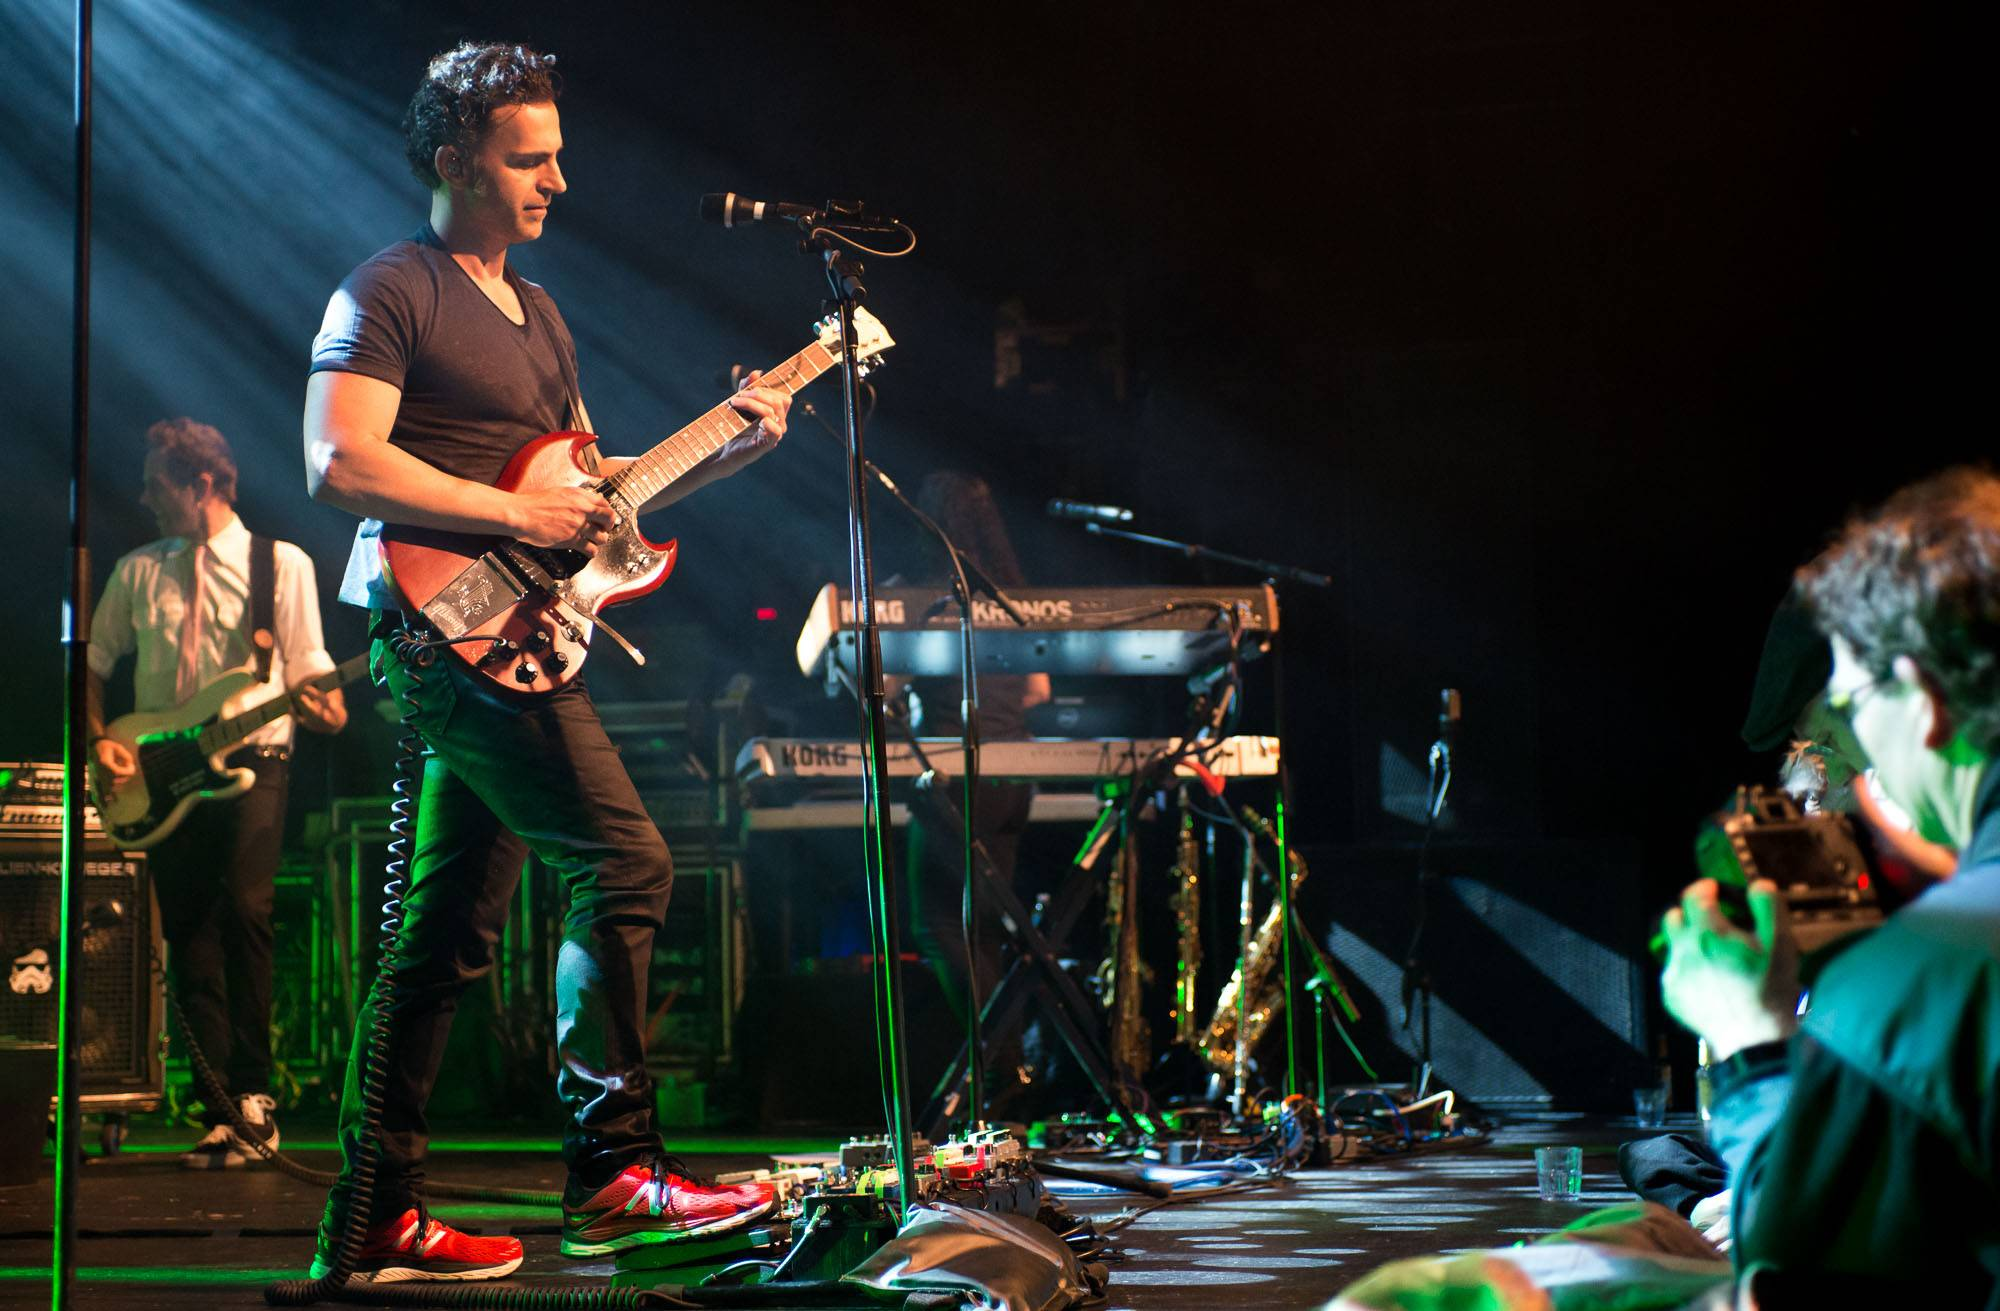 Dweezil Zappa at the Commodore Ballroom, Vancouver, Apr. 25 2017. Jessica Vandergulik photo.